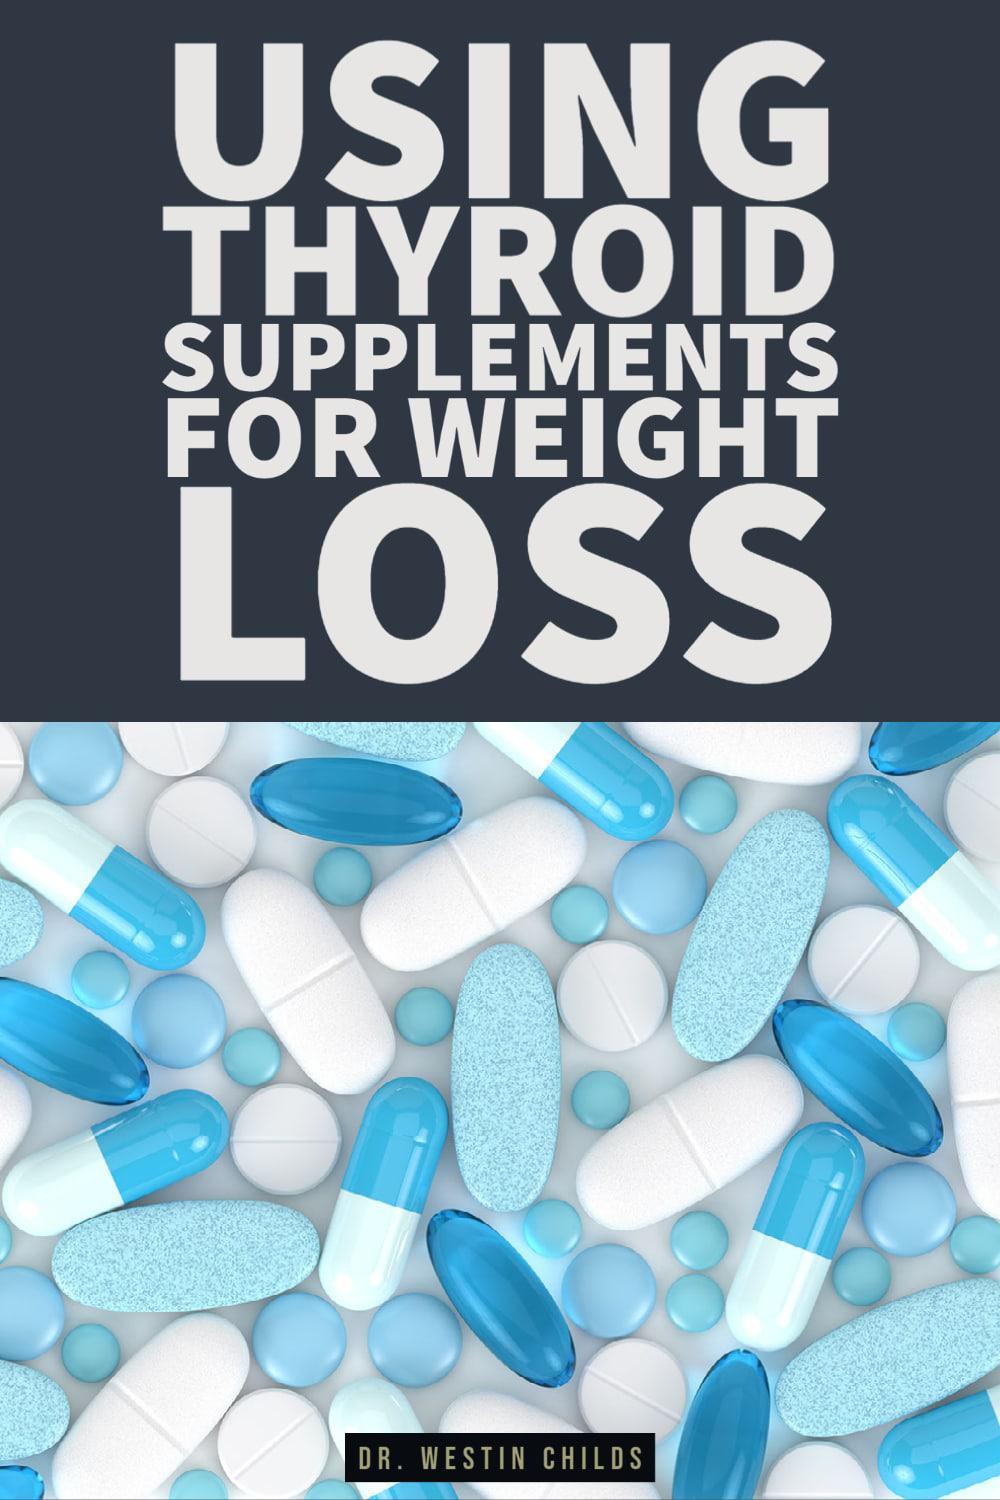 how to use thyroid supplements for weight loss